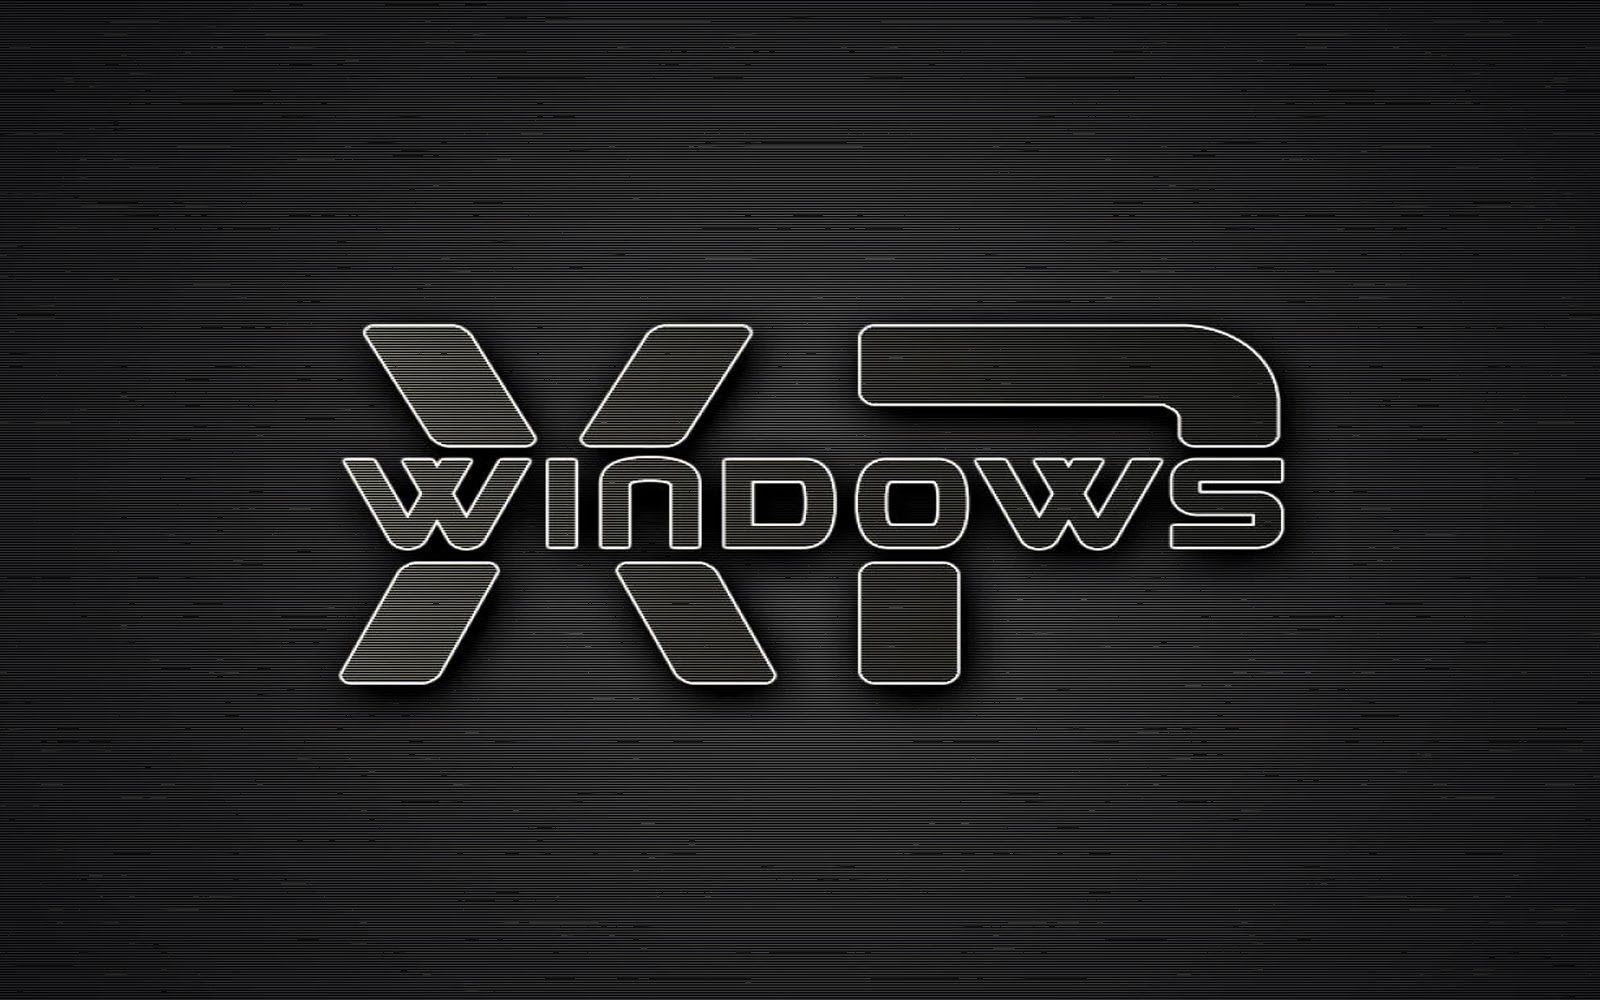 Windows Xp Metal Wallpapers Hd Car Wallpapers